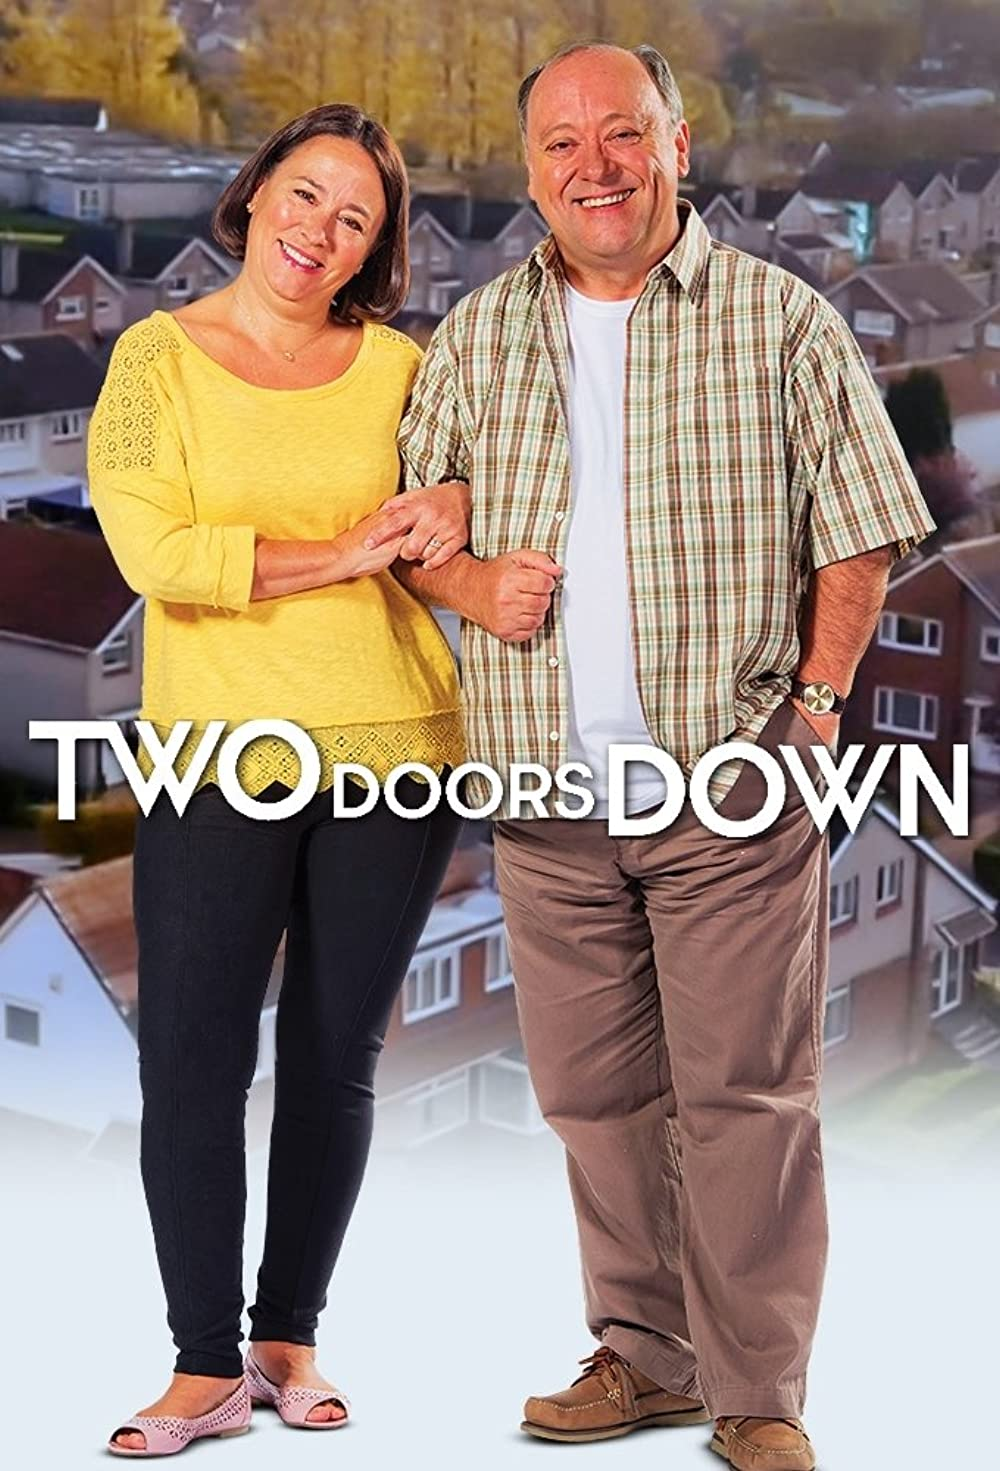 Two Doors Down poster